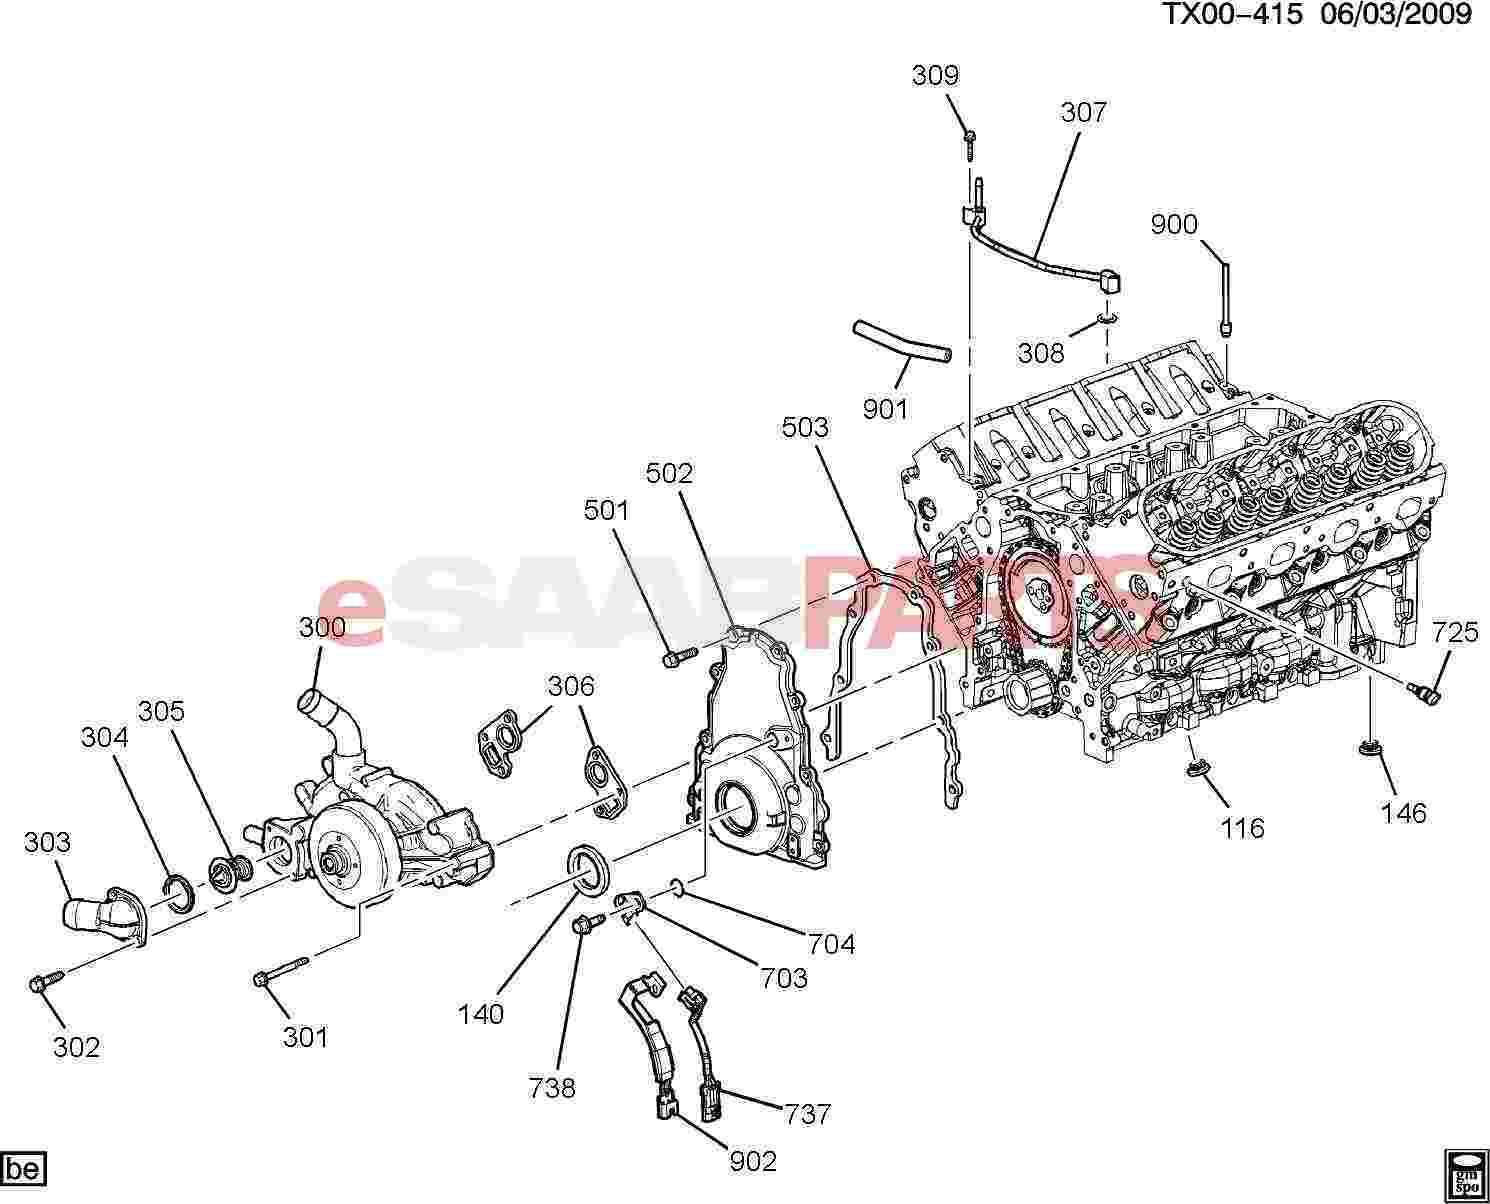 12602048 Saab Plug Engine Cool Air Bl Genuine Parts From 302 Diagram Image 900